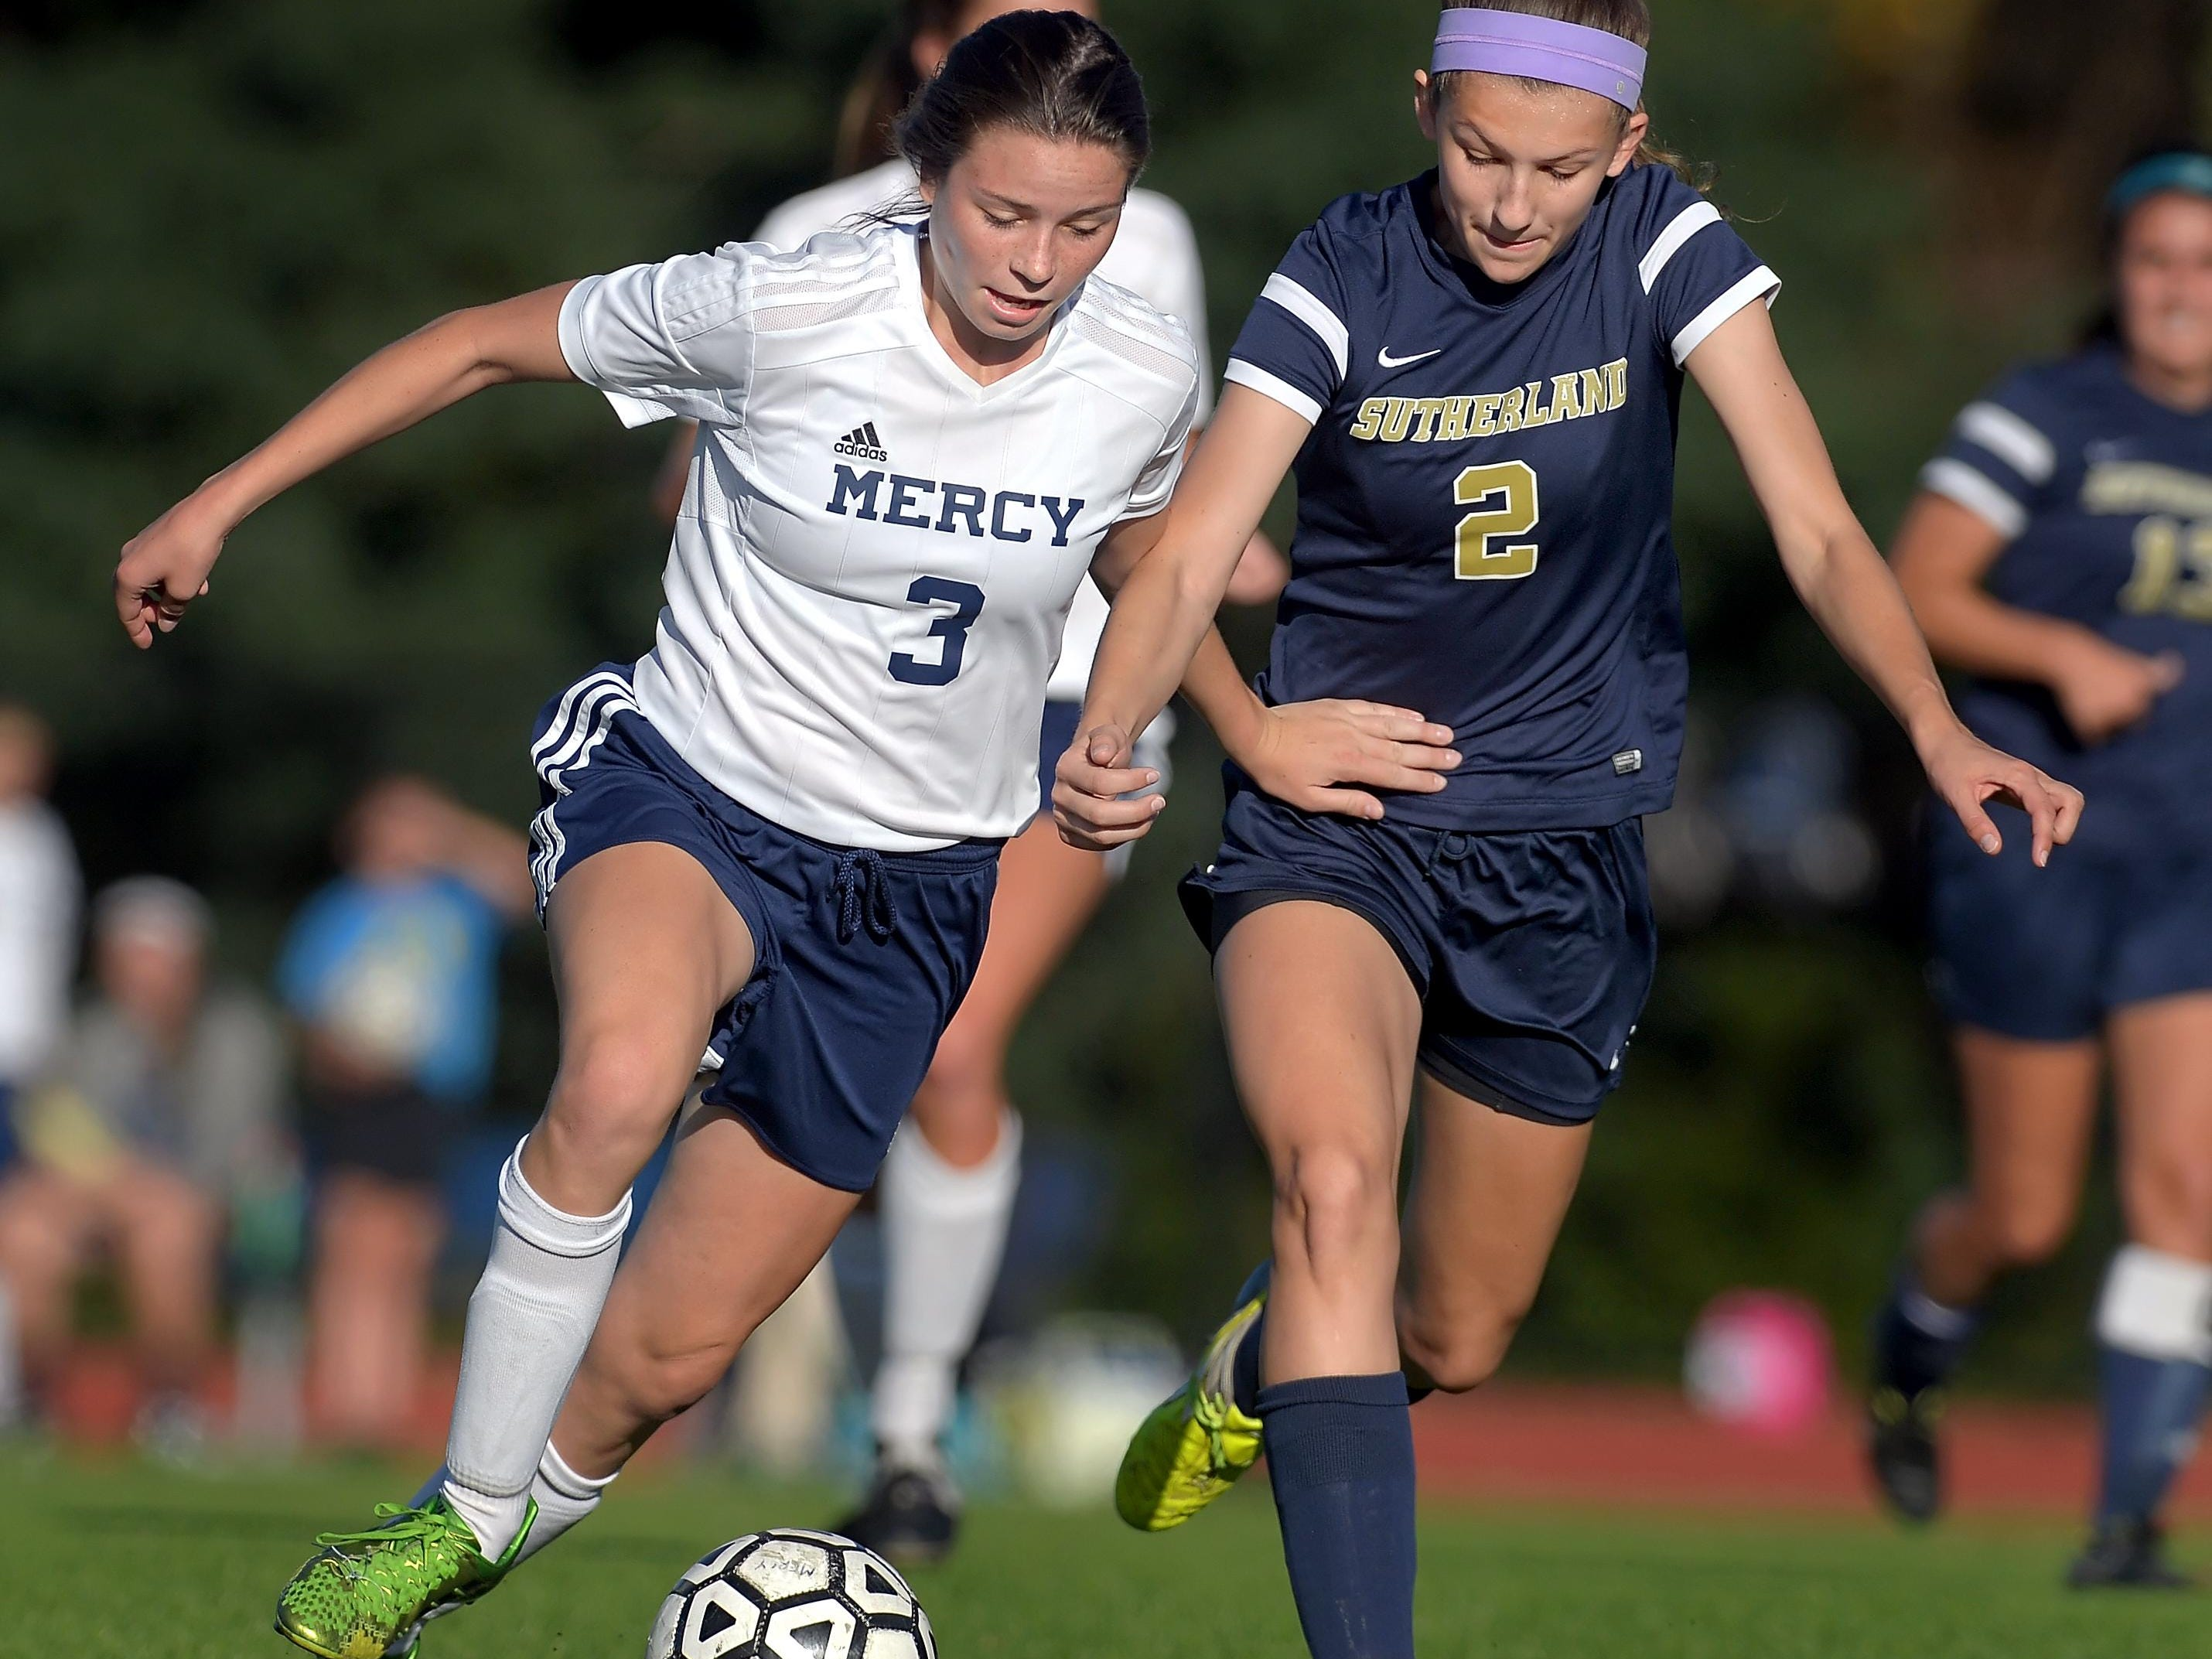 Mercy's Emily Wade, left, and Pittsford Sutherland's Claire Anvelt battle for position on the ball at Our Lady of Mercy High School on Monday. Pittsford Sutherland beat Mercy, 2-0.